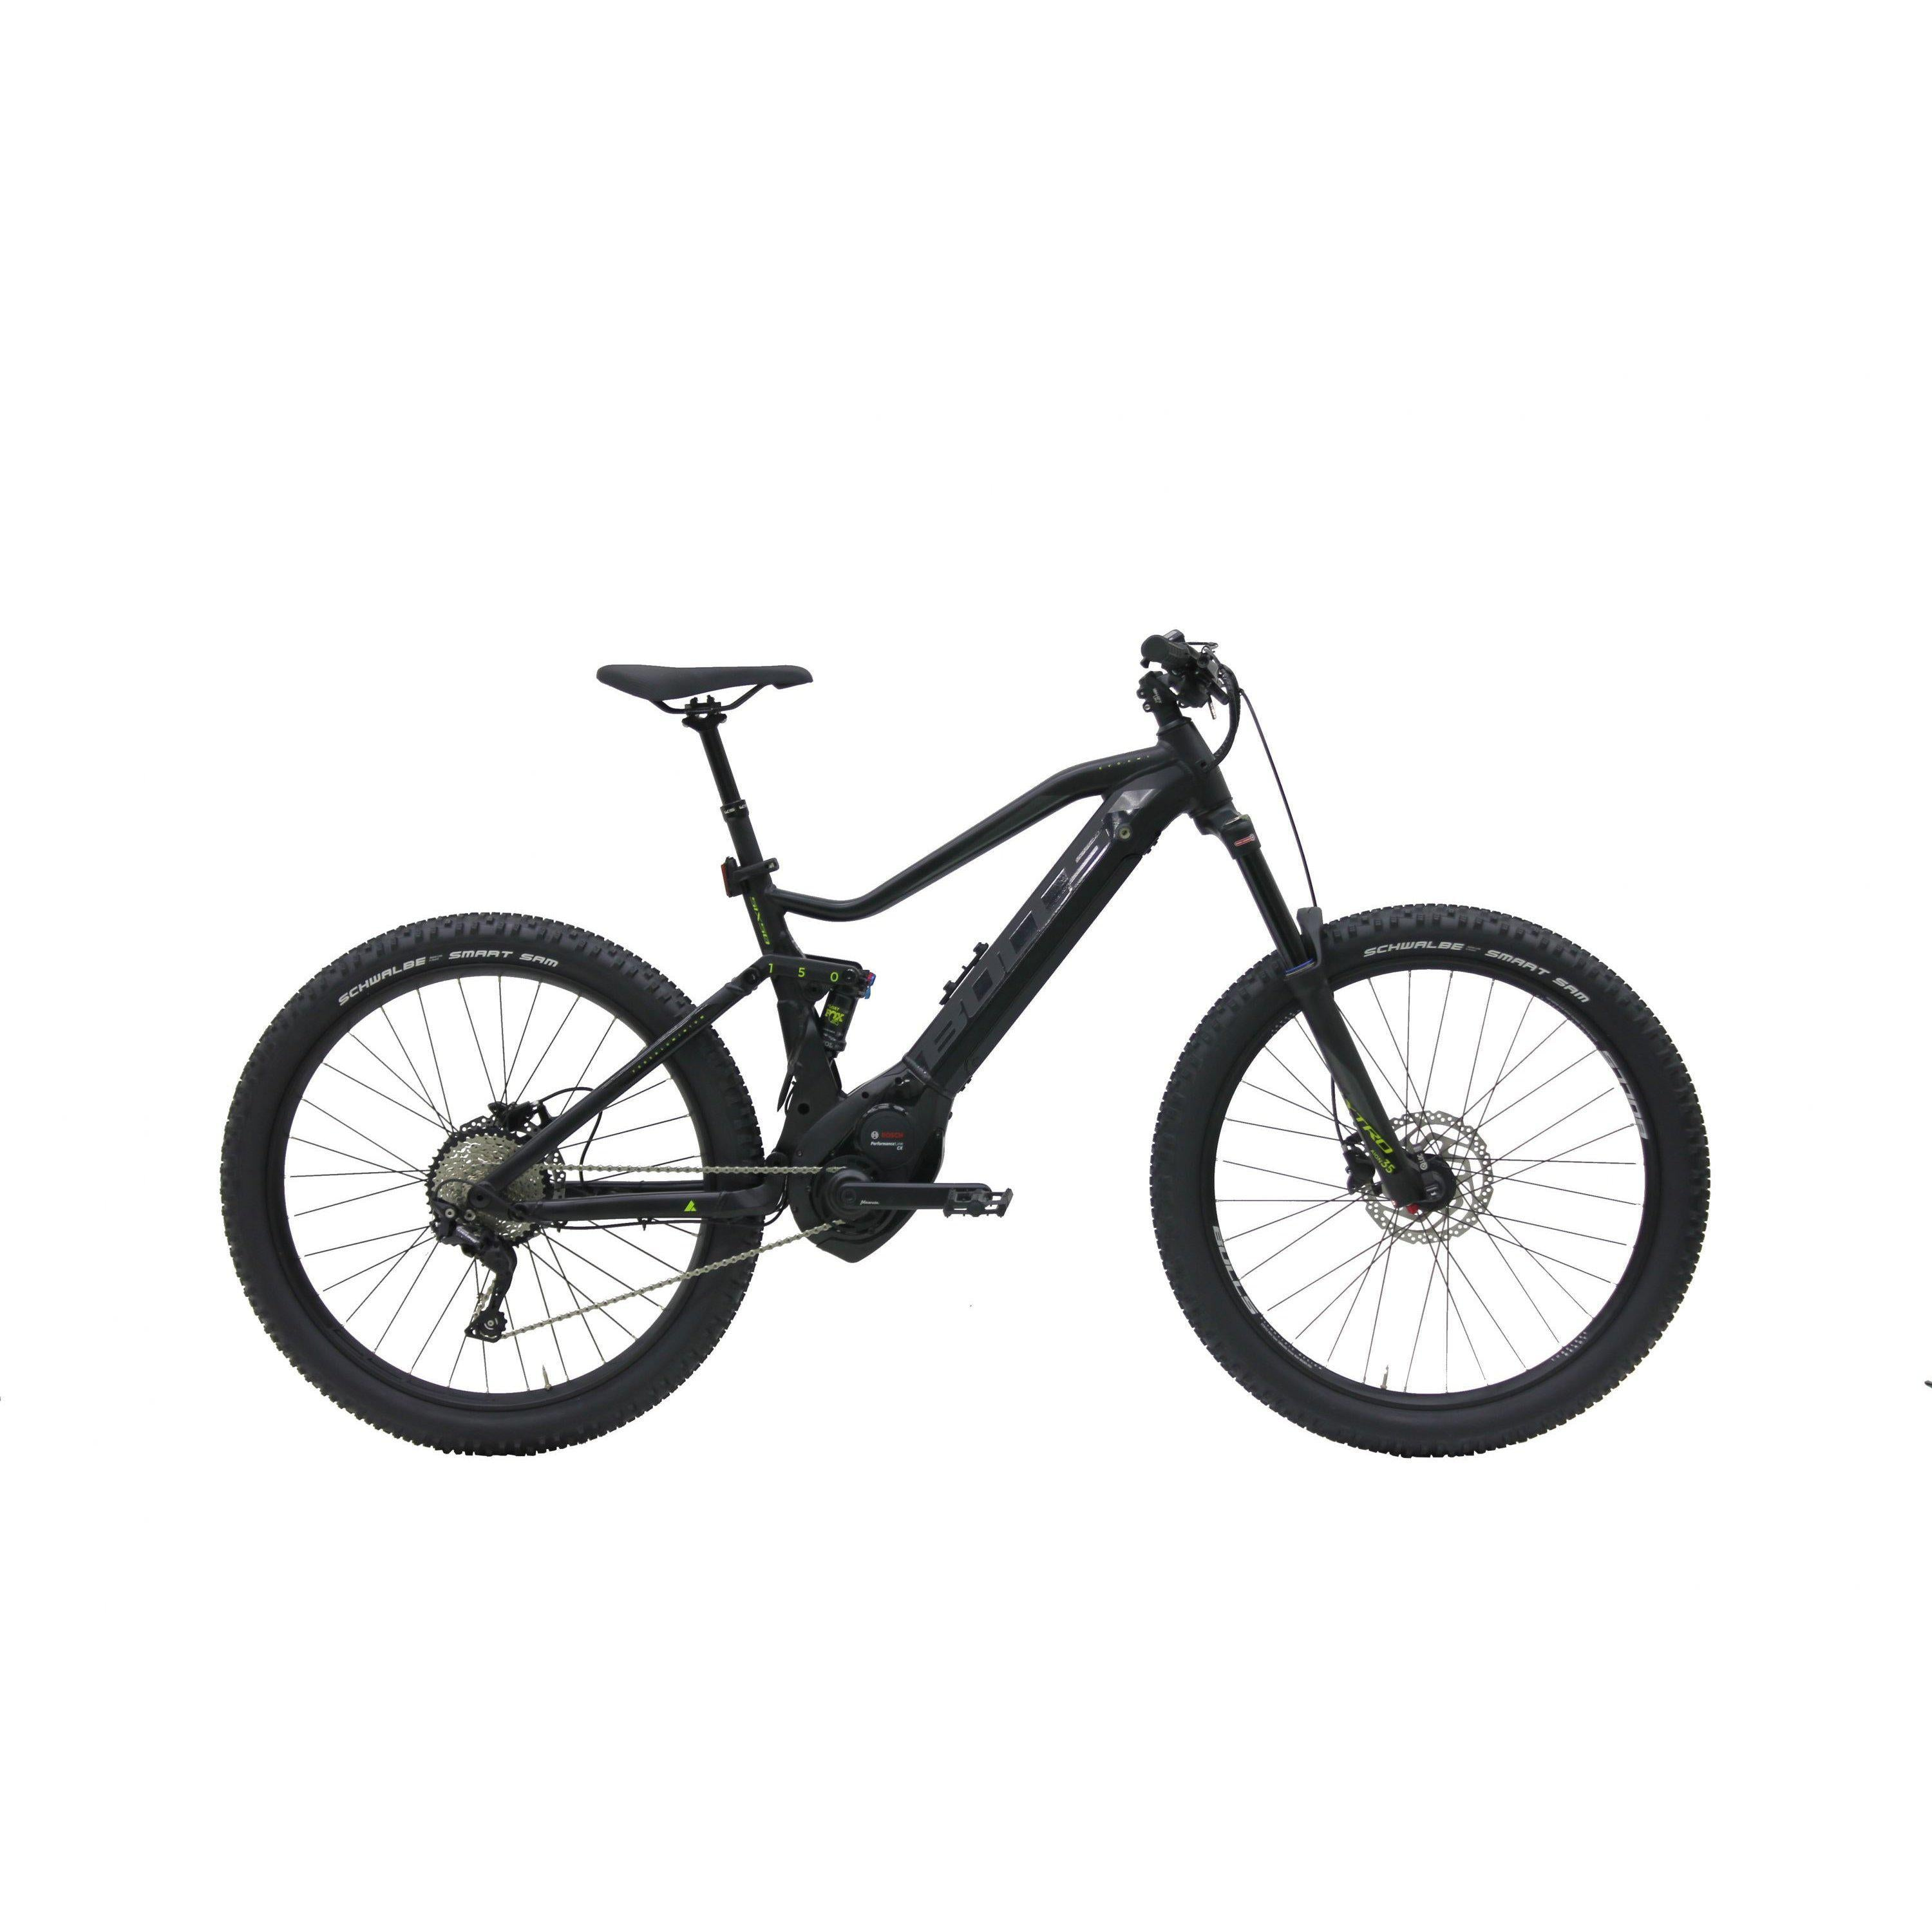 BULLS SIX50 EVO AM 1-Oregon E-Bikes